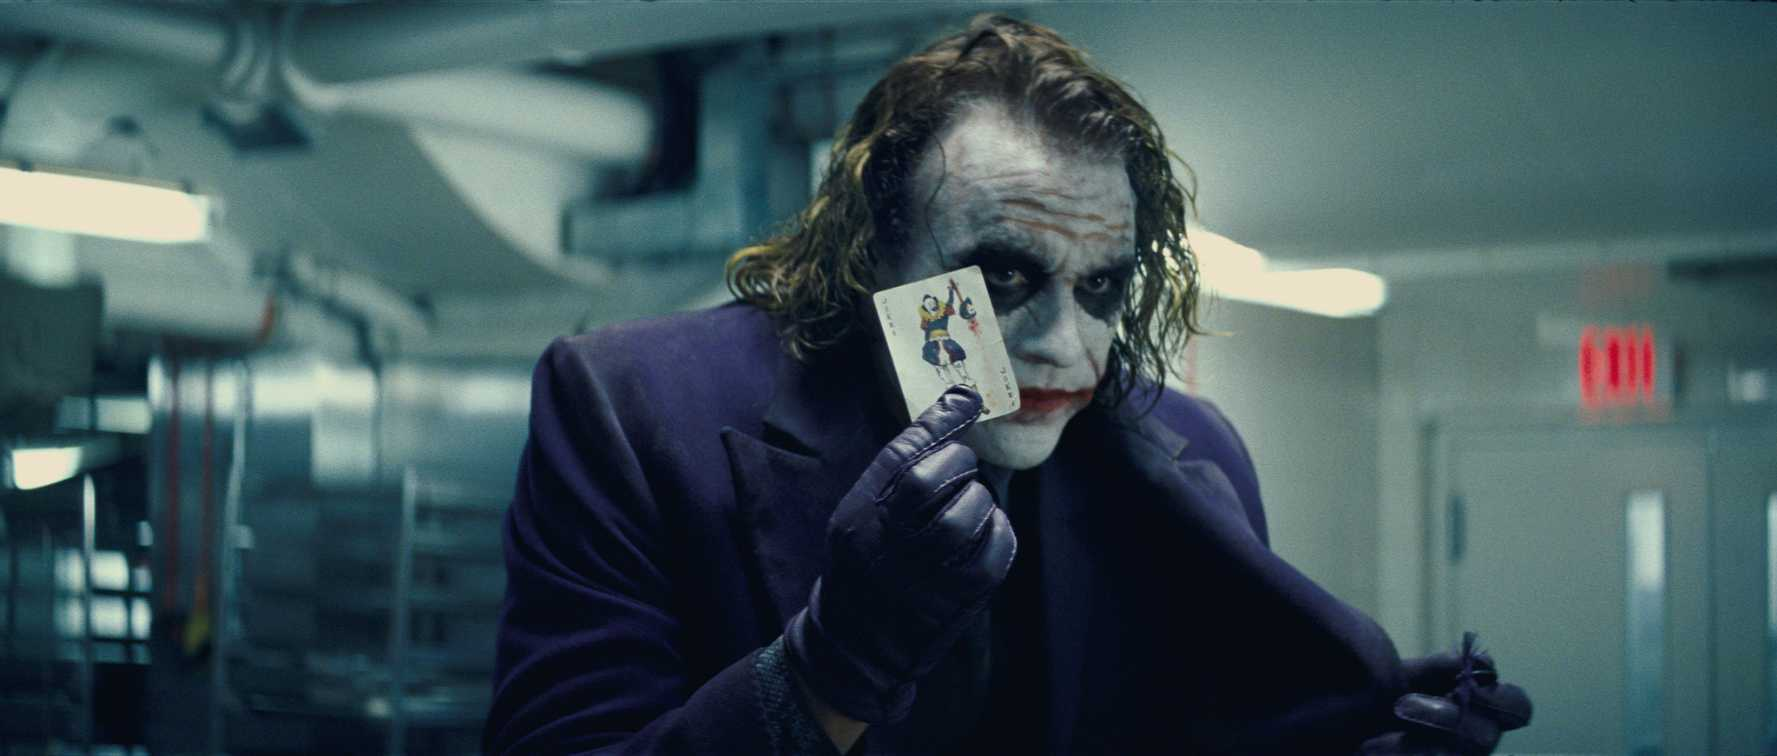 Heath Ledger iconicized The Joker in The Dark Knight